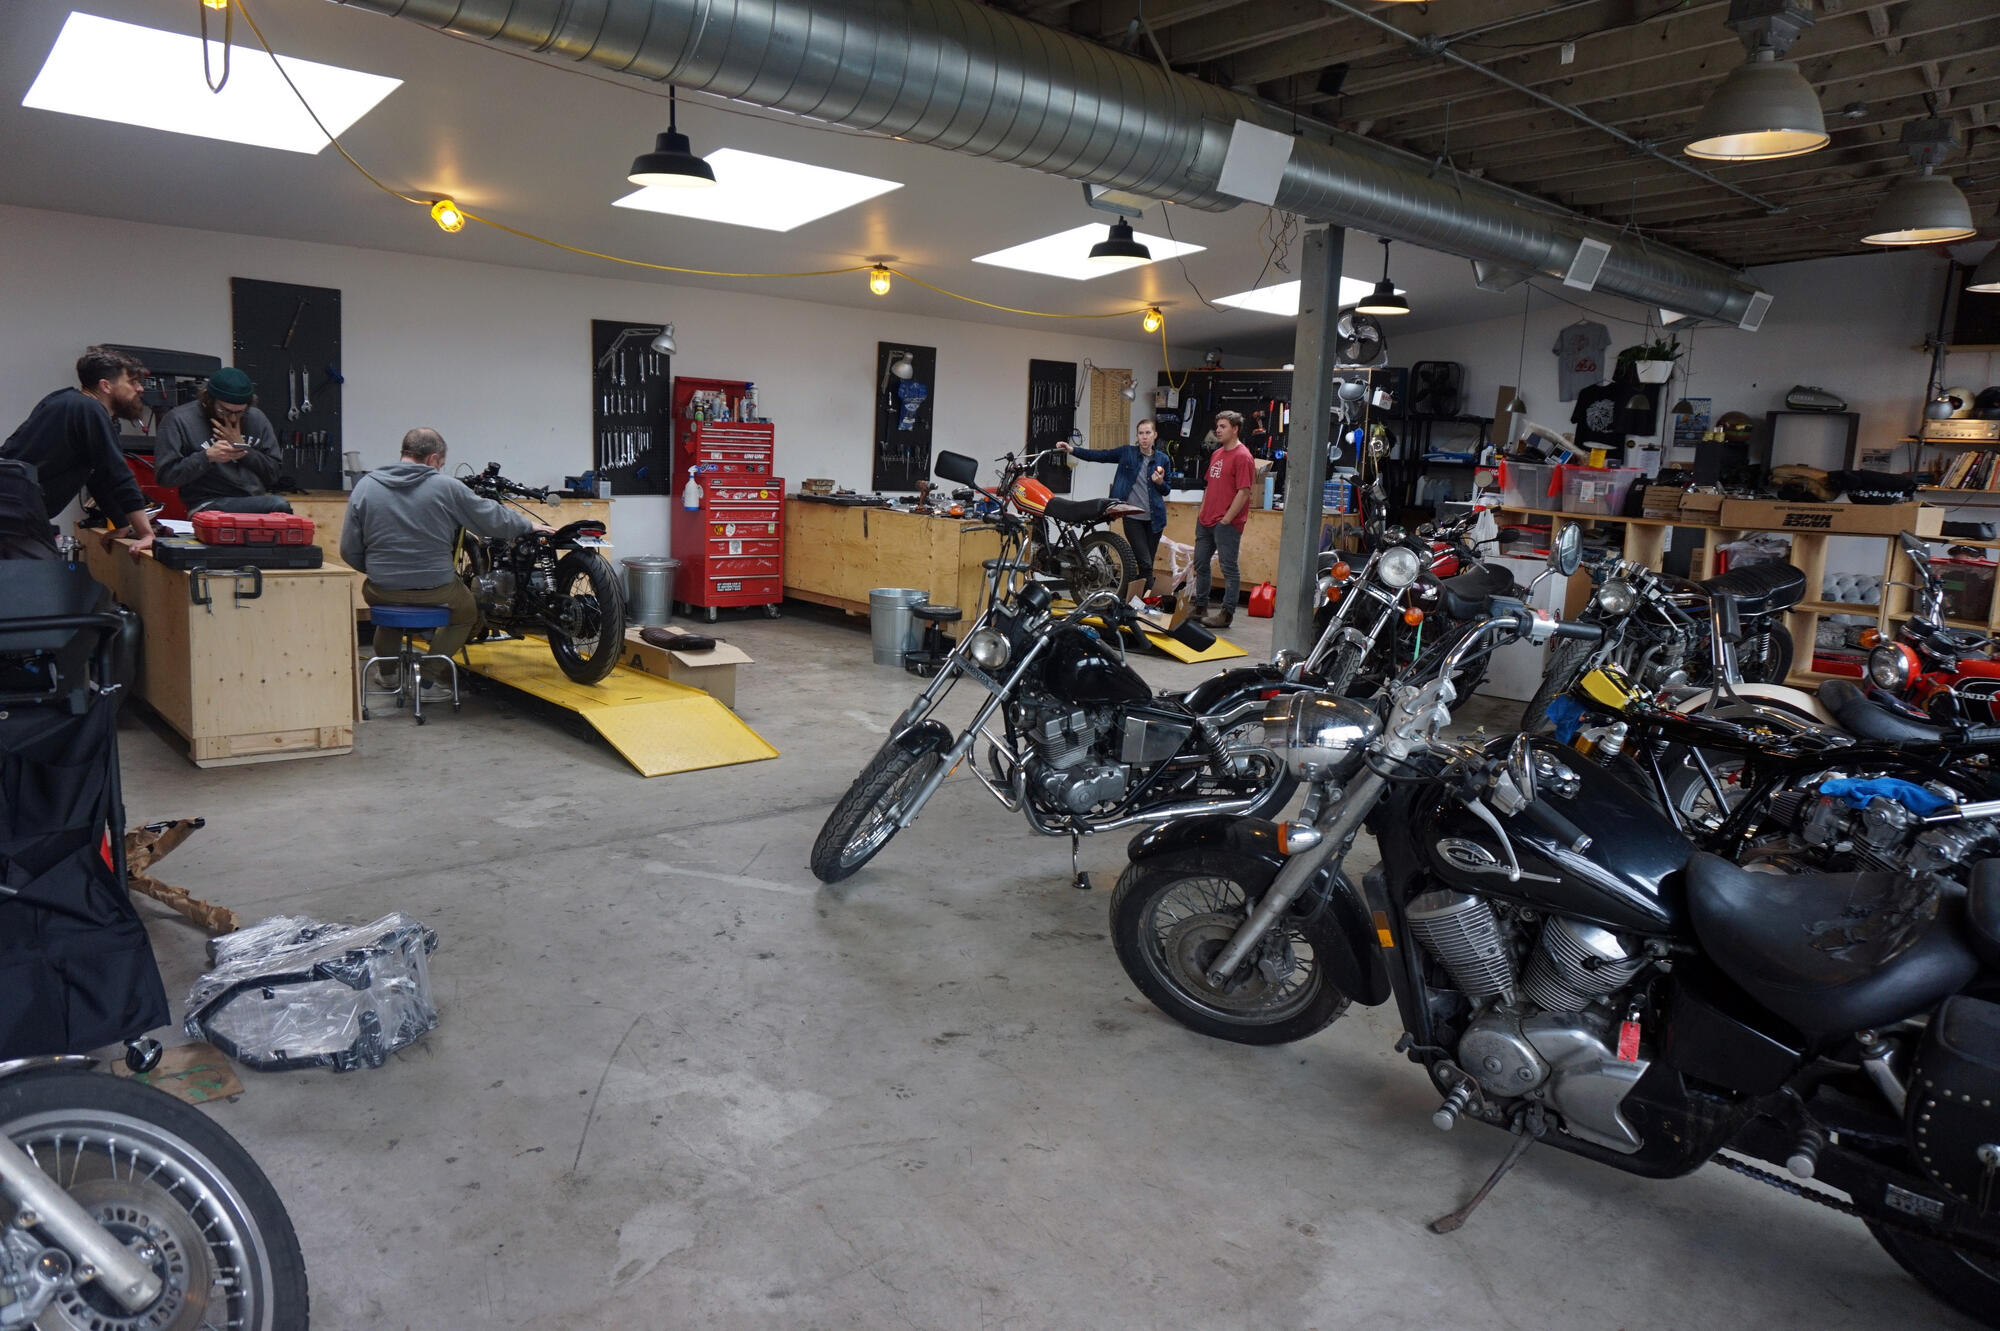 Moto revere diy motorcycle garage in toronto northern for Garage moto courbevoie